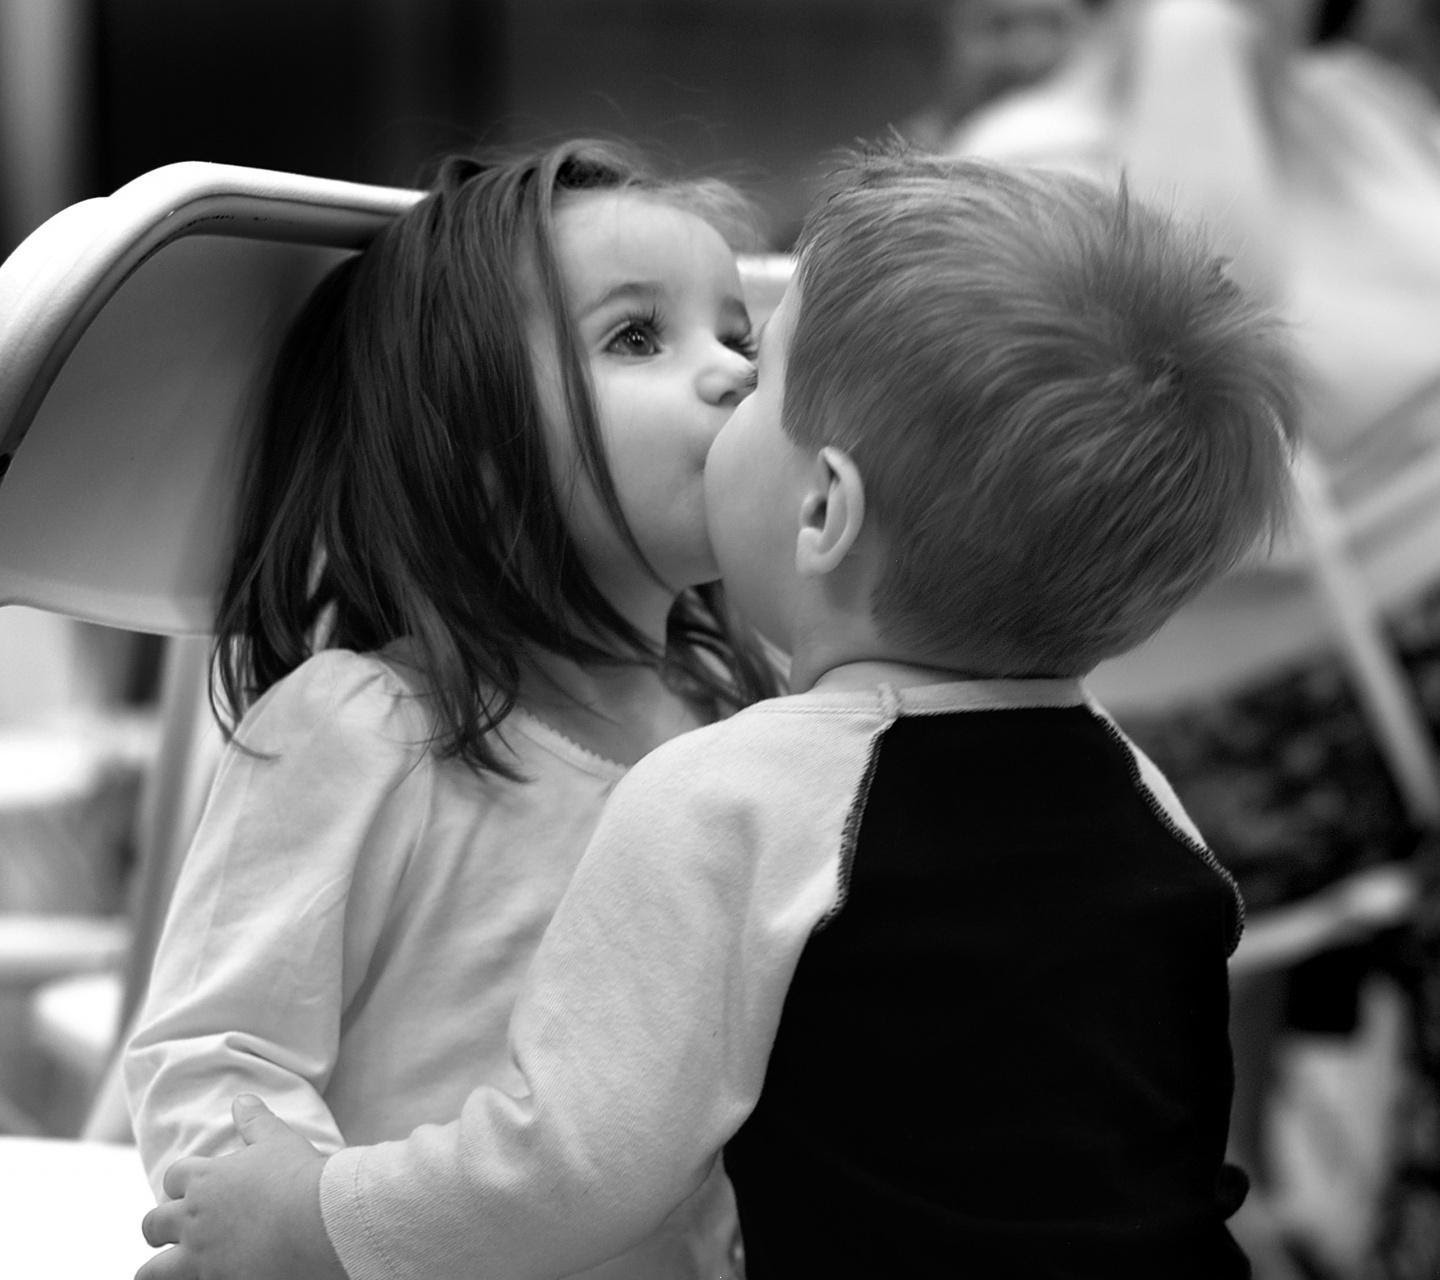 Download Cute Kids Kissing Couple Hd Wallpaper For Laptop Innocent